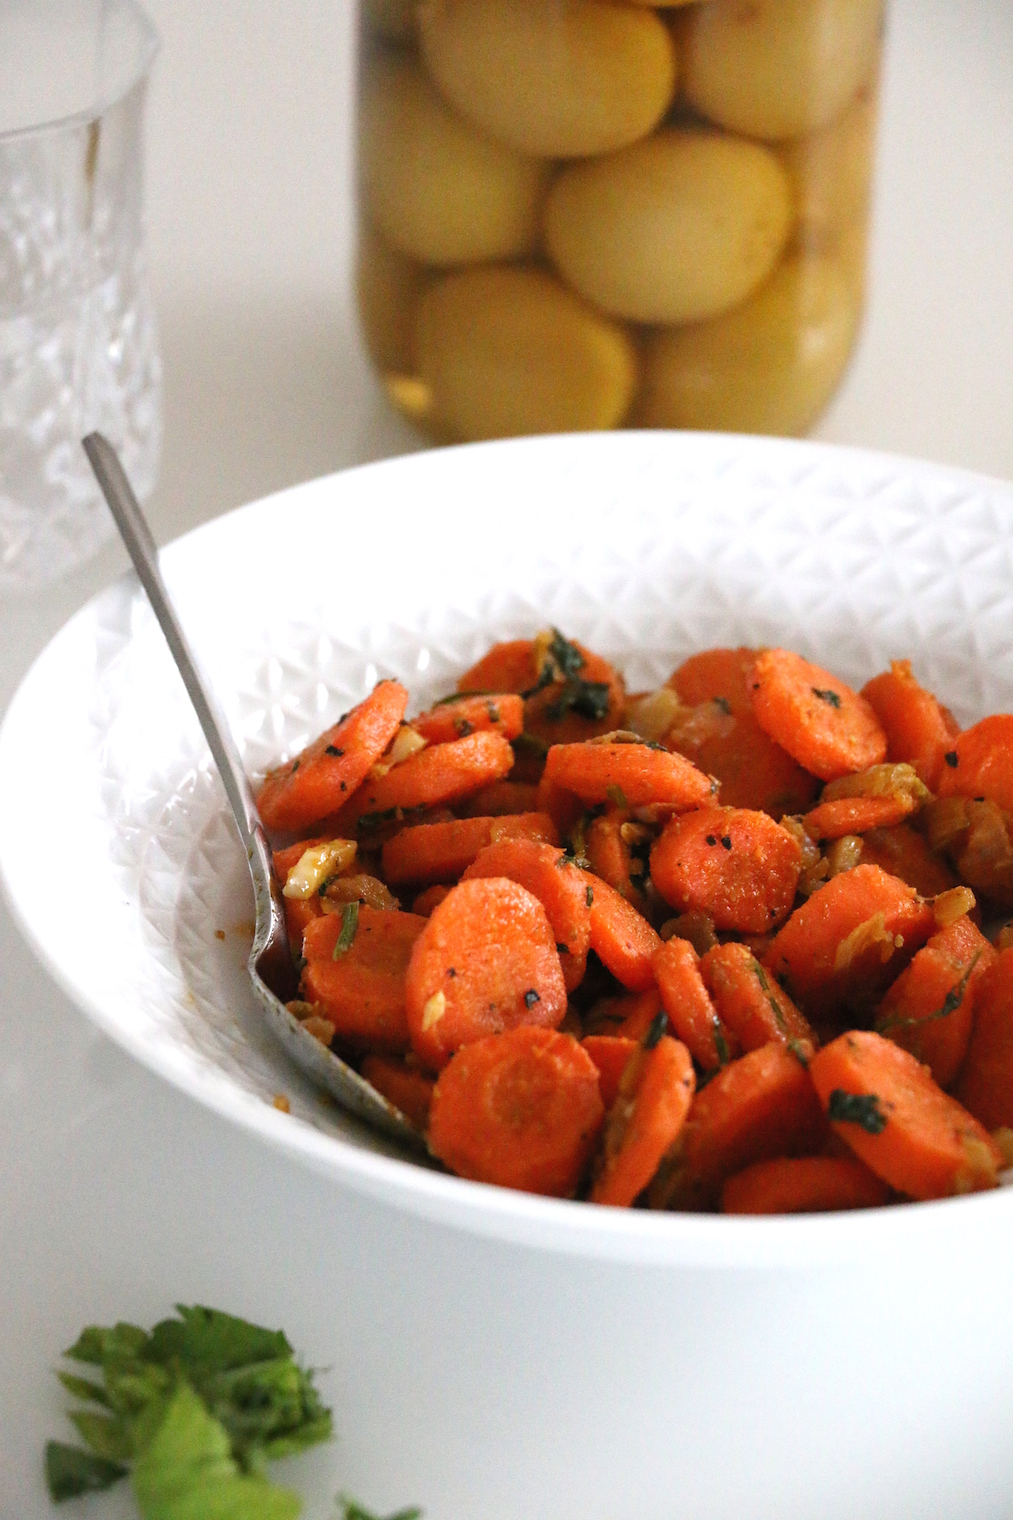 moroccan spiced cooked carrot salad